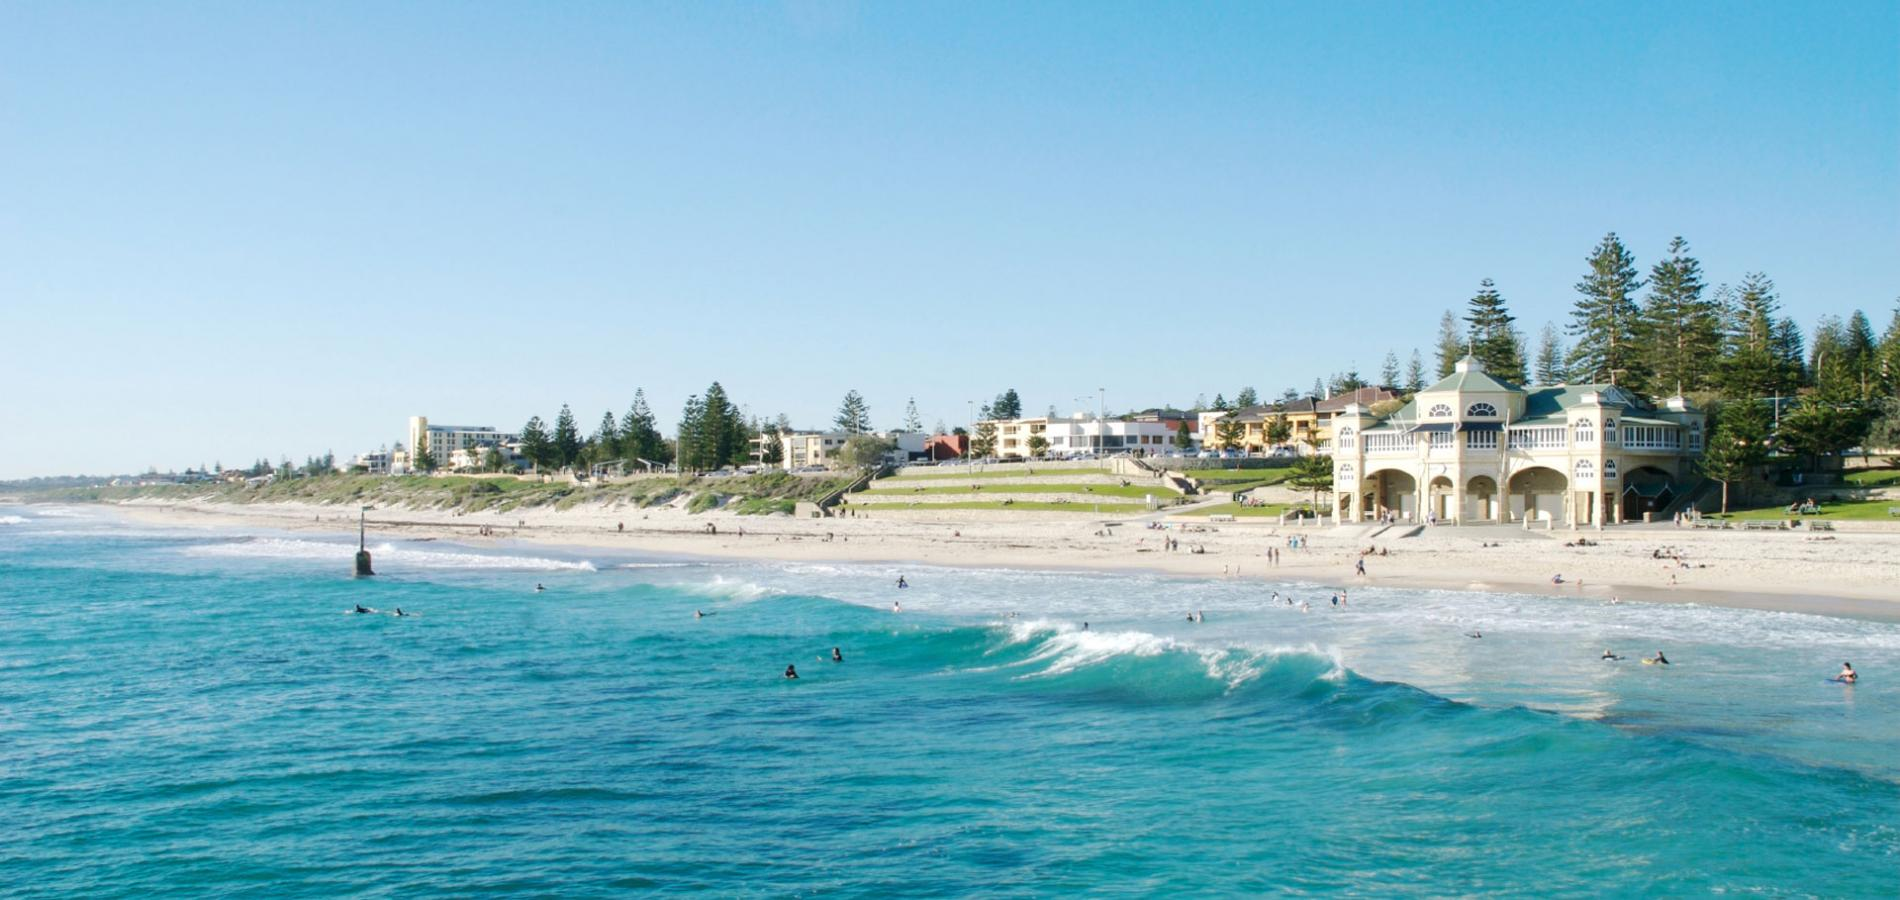 Australia Beach Property For Sale